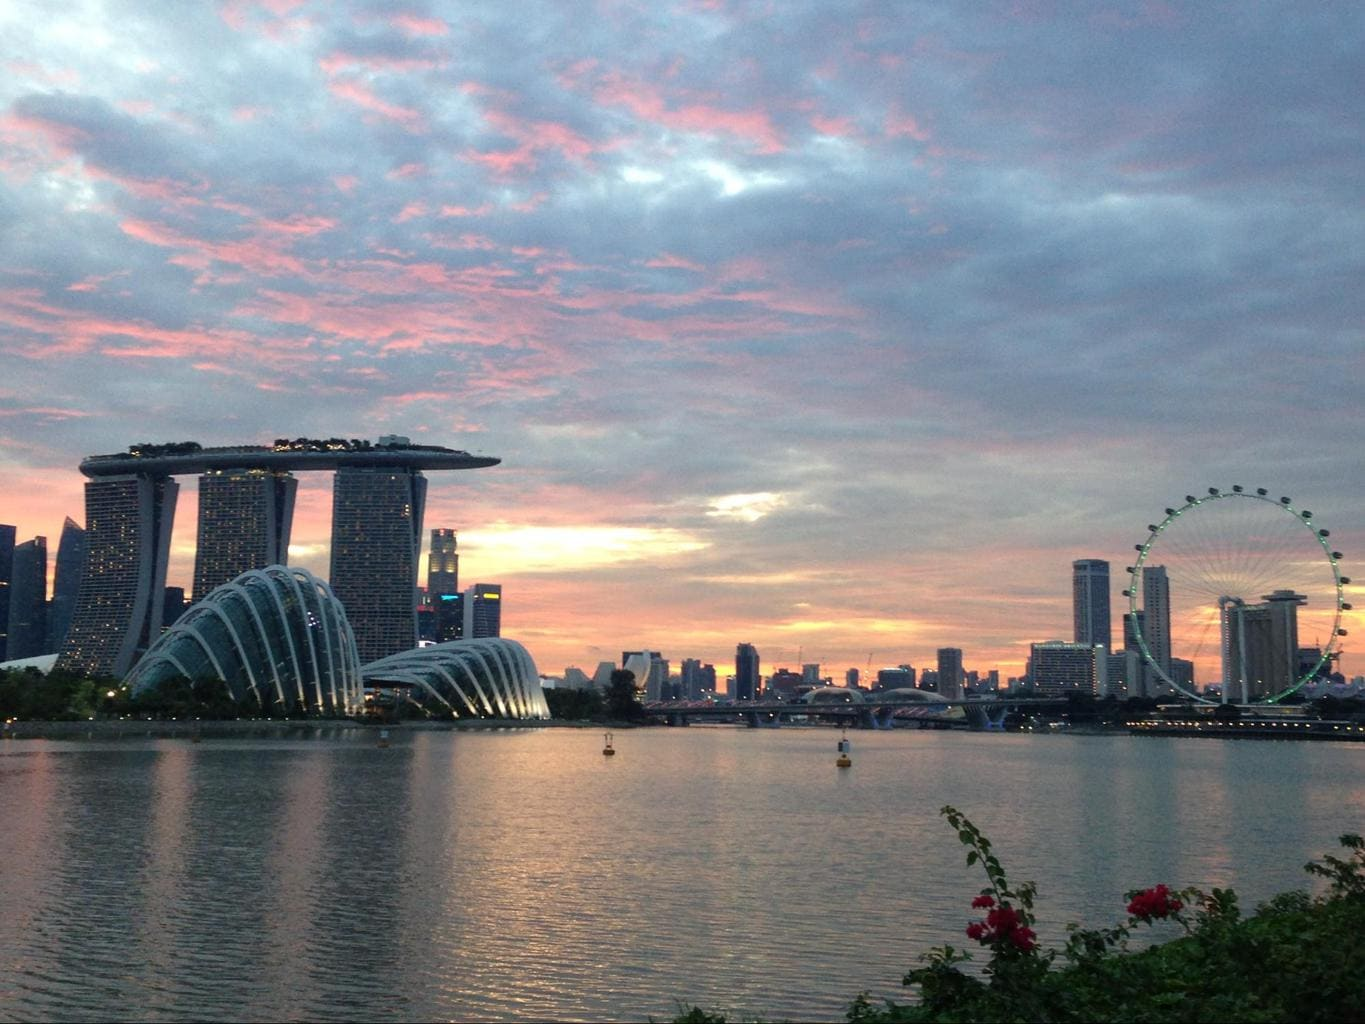 View over the Marina Bay area from Bay East Garden